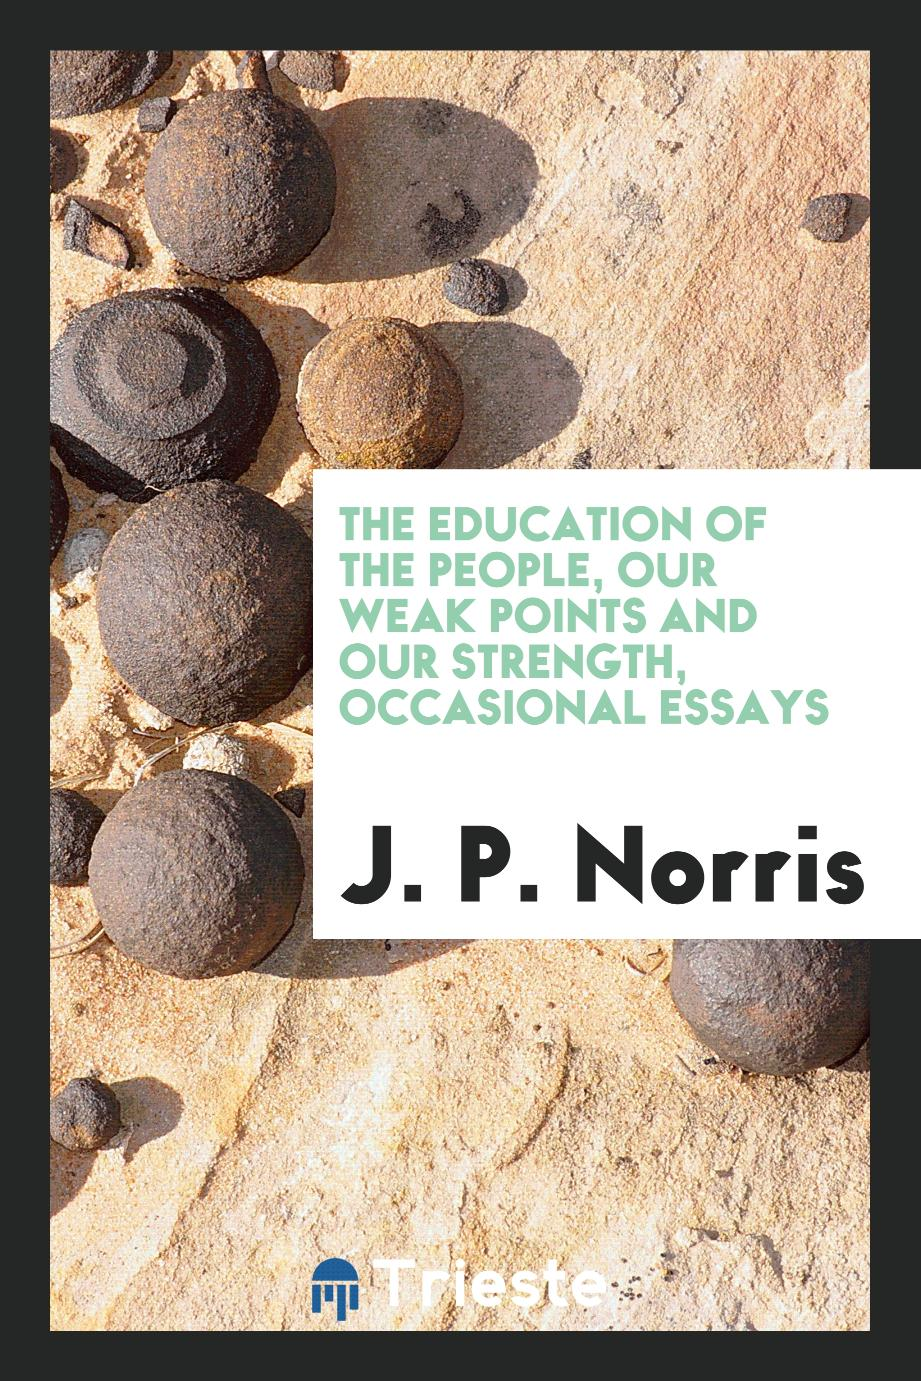 The education of the people, our weak points and our strength, occasional essays